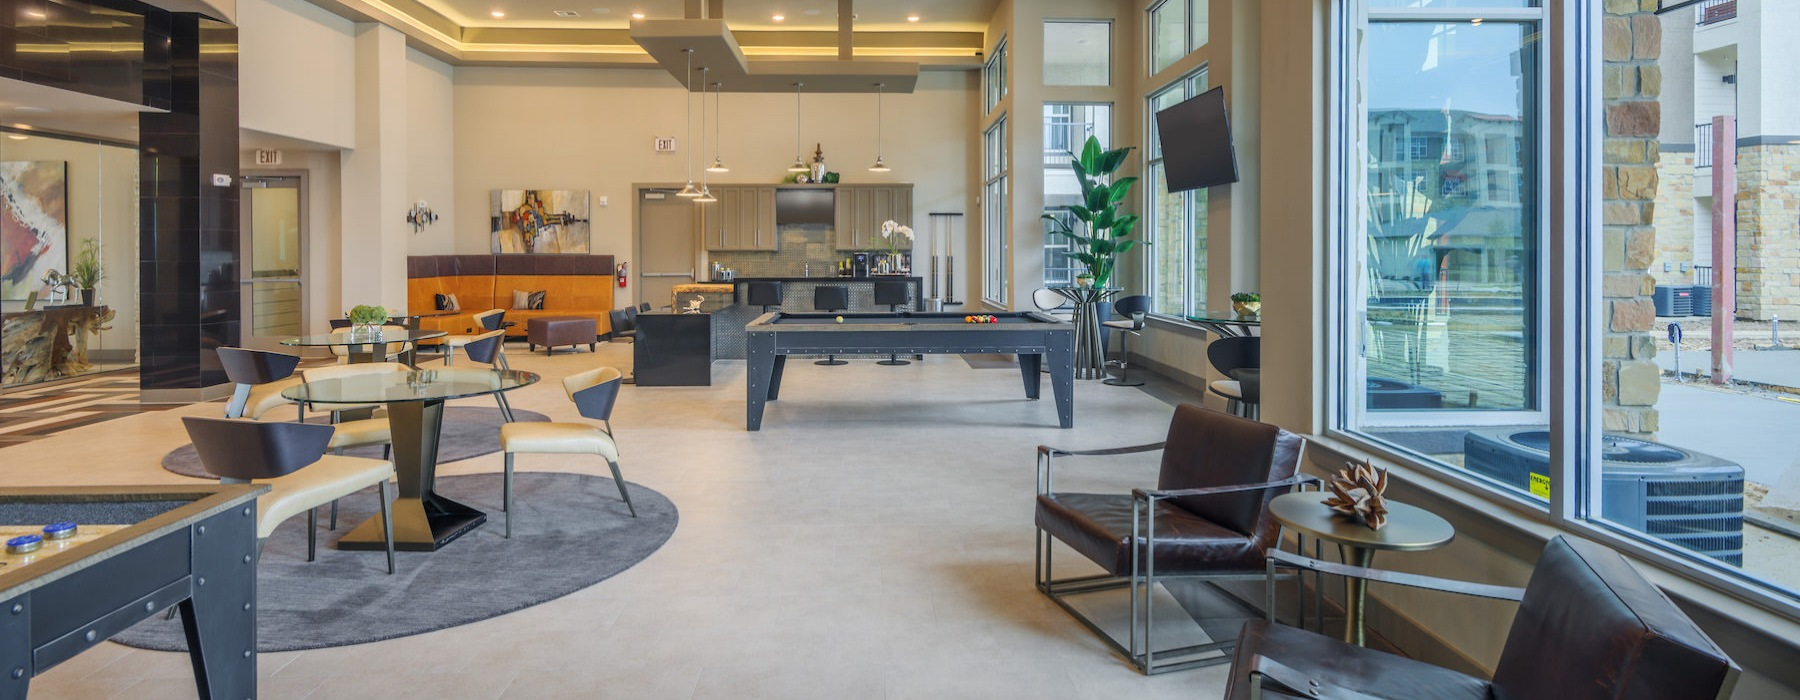 Model unit at Radius West showing the community room with tables, chairs, pool table, and food bar area